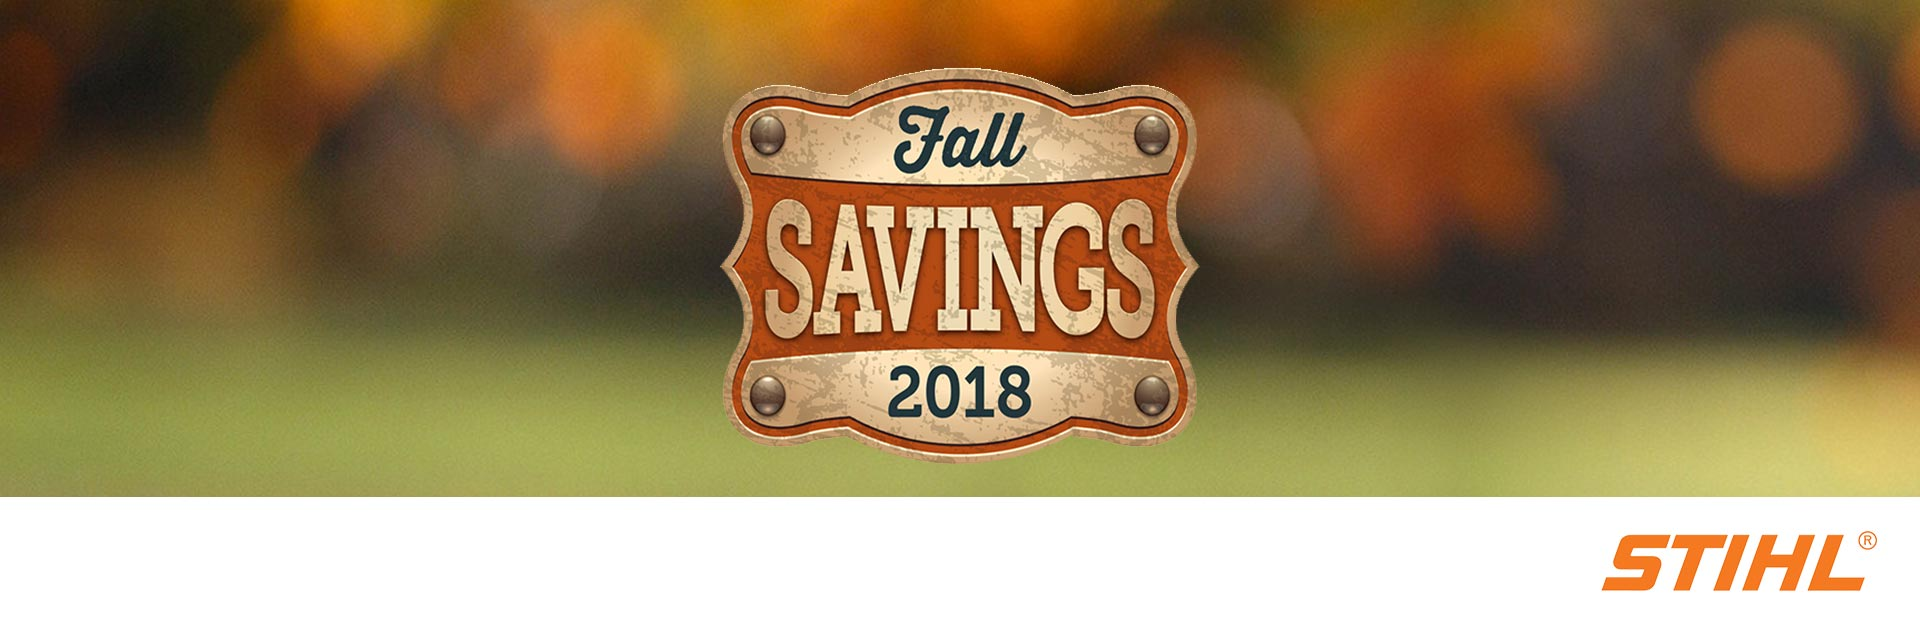 STIHL Fall Savings 2018